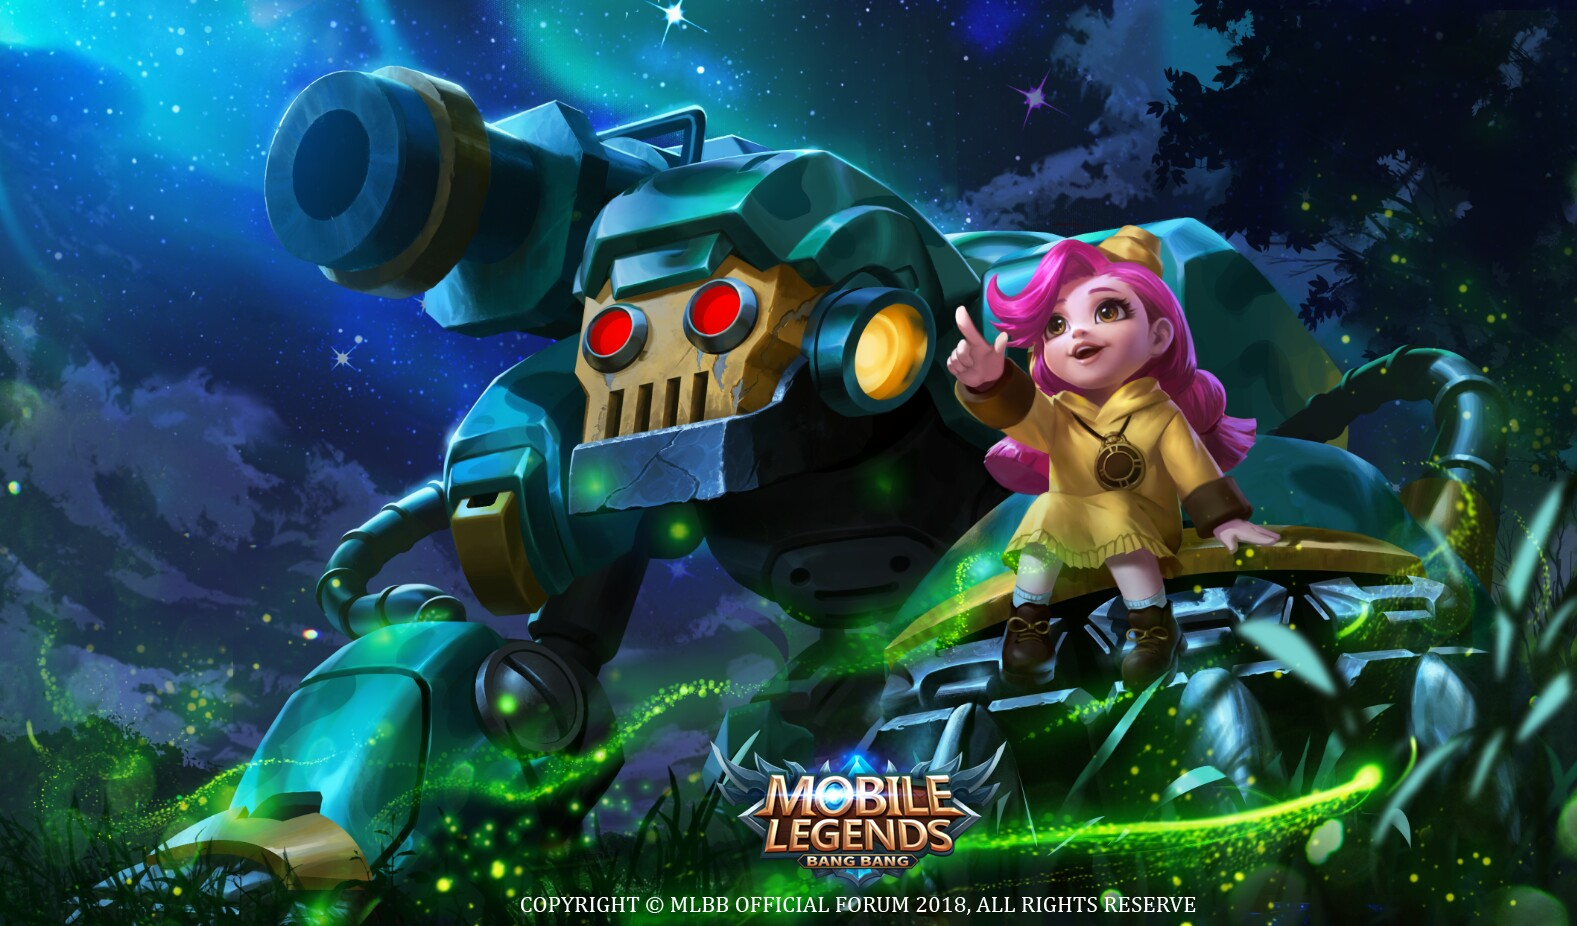 Jawhead_Skin01_Girl_Scout_HD_Wallpaper-.png